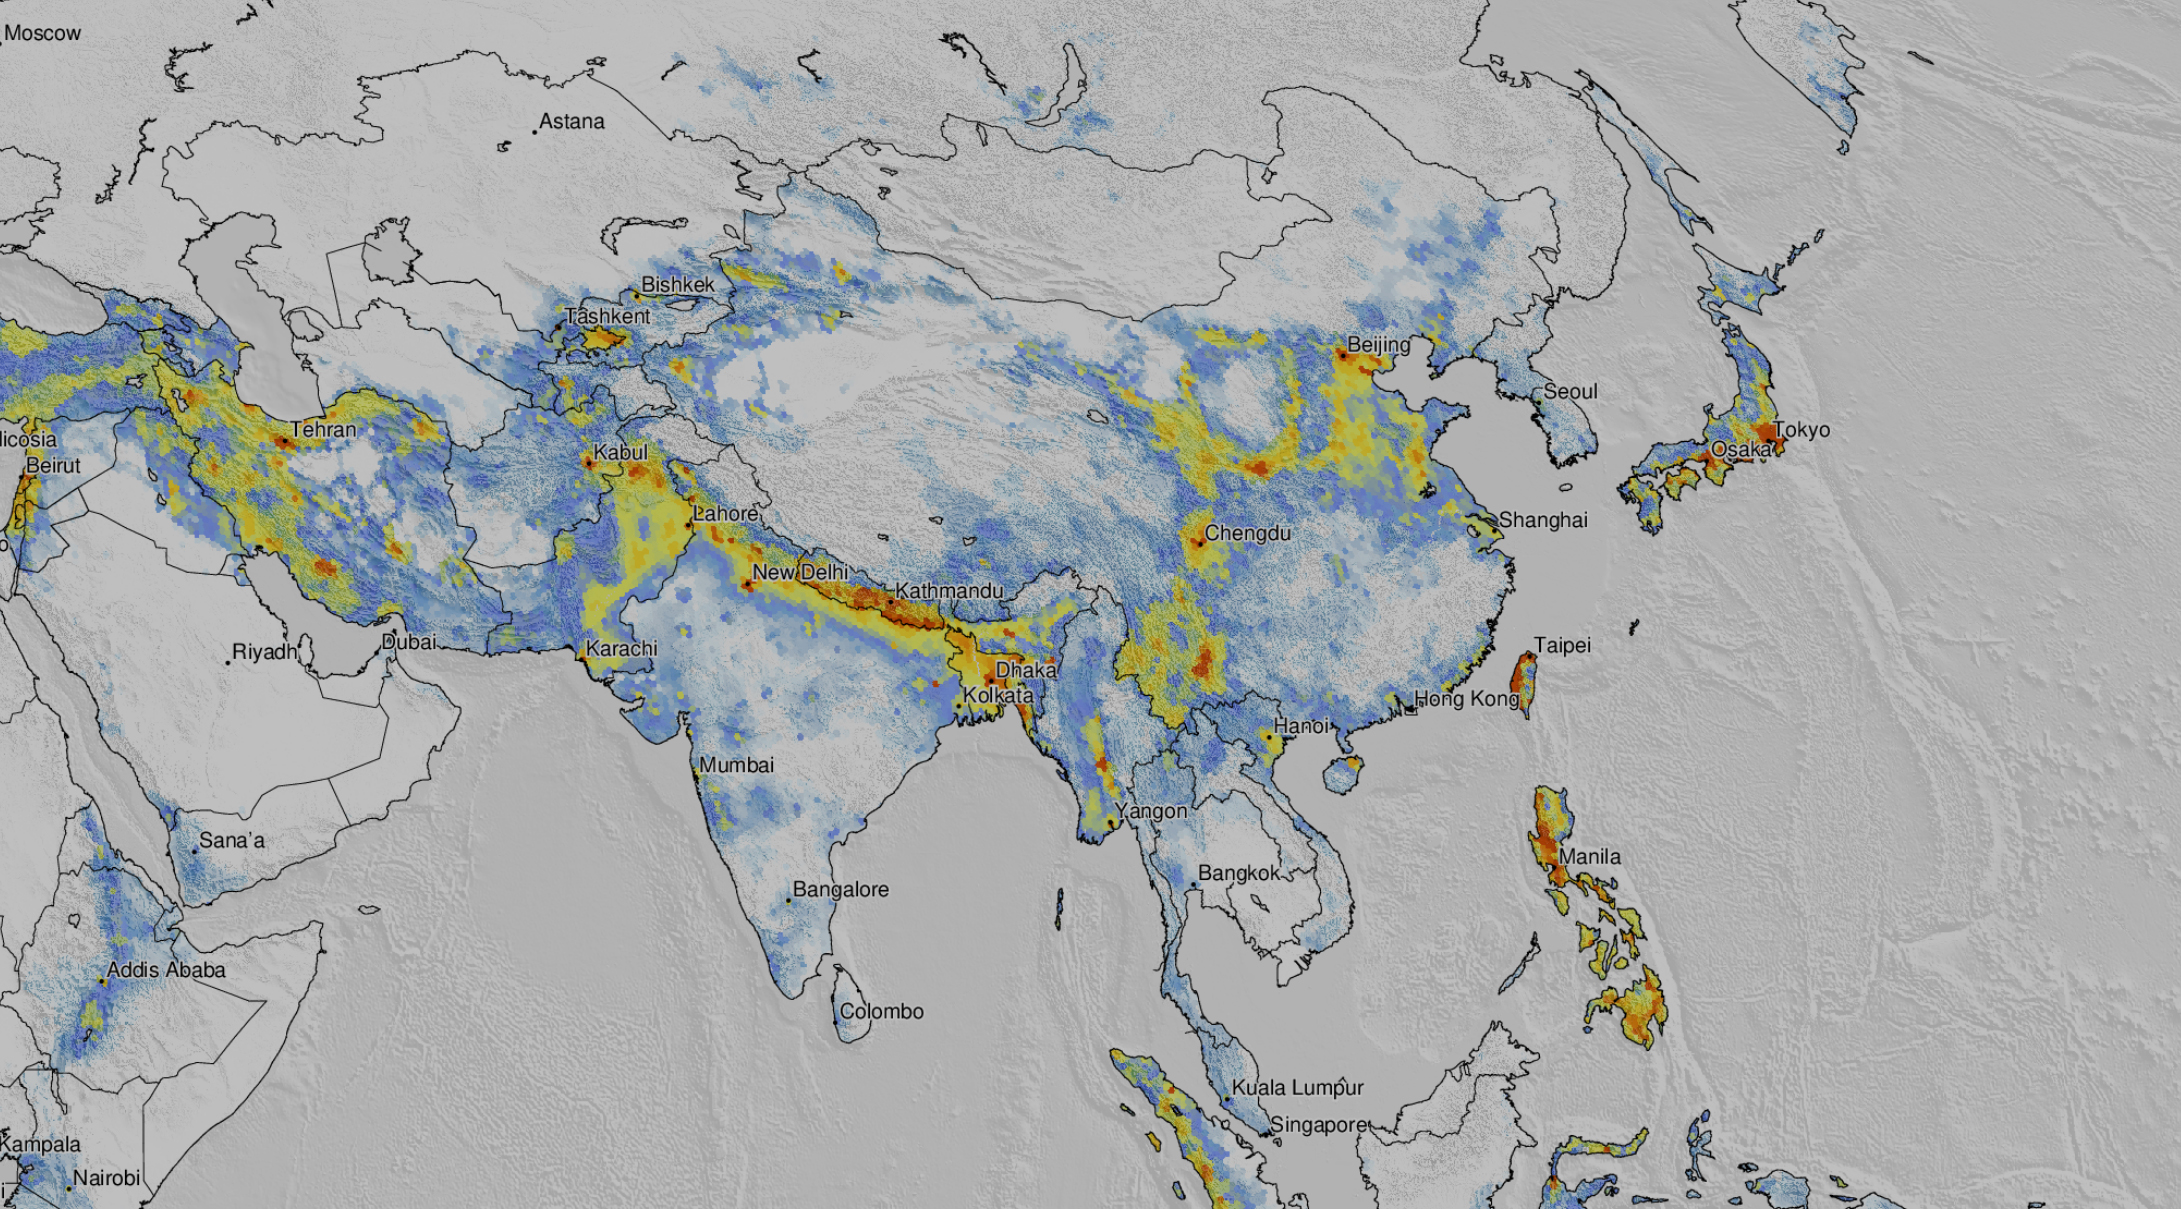 Global Earthquake Model - A milestone in earthquake risk assessment